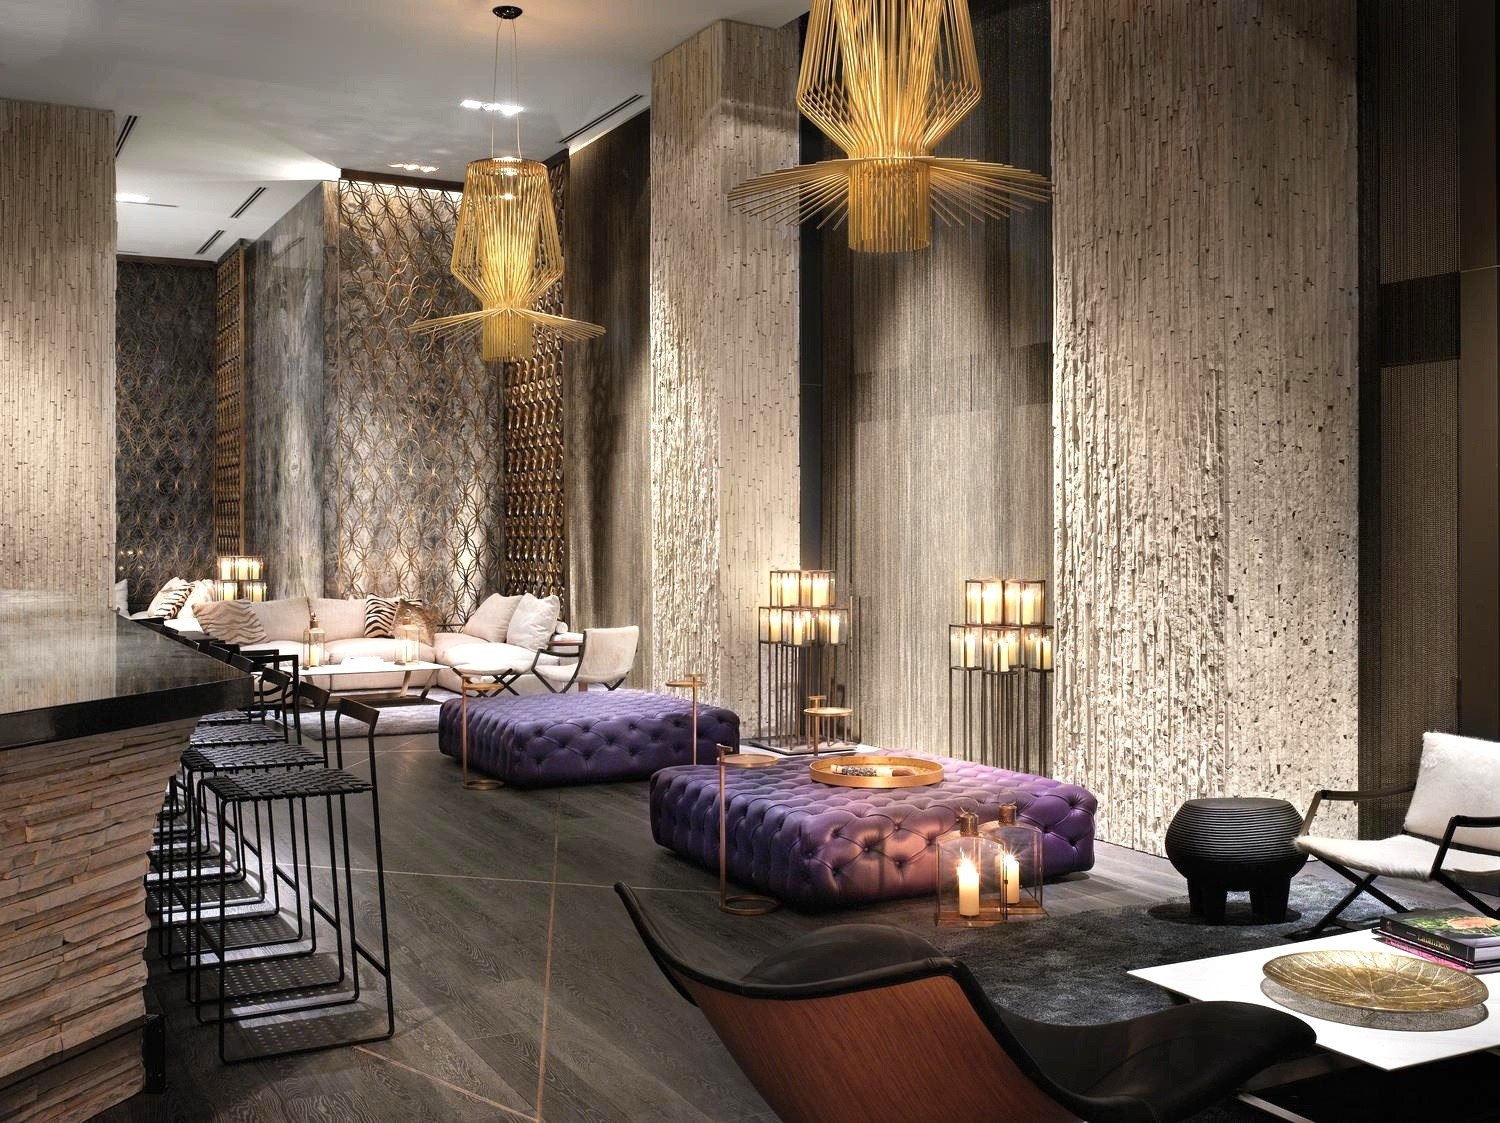 Living room bars in south beach miami for Art hotel design